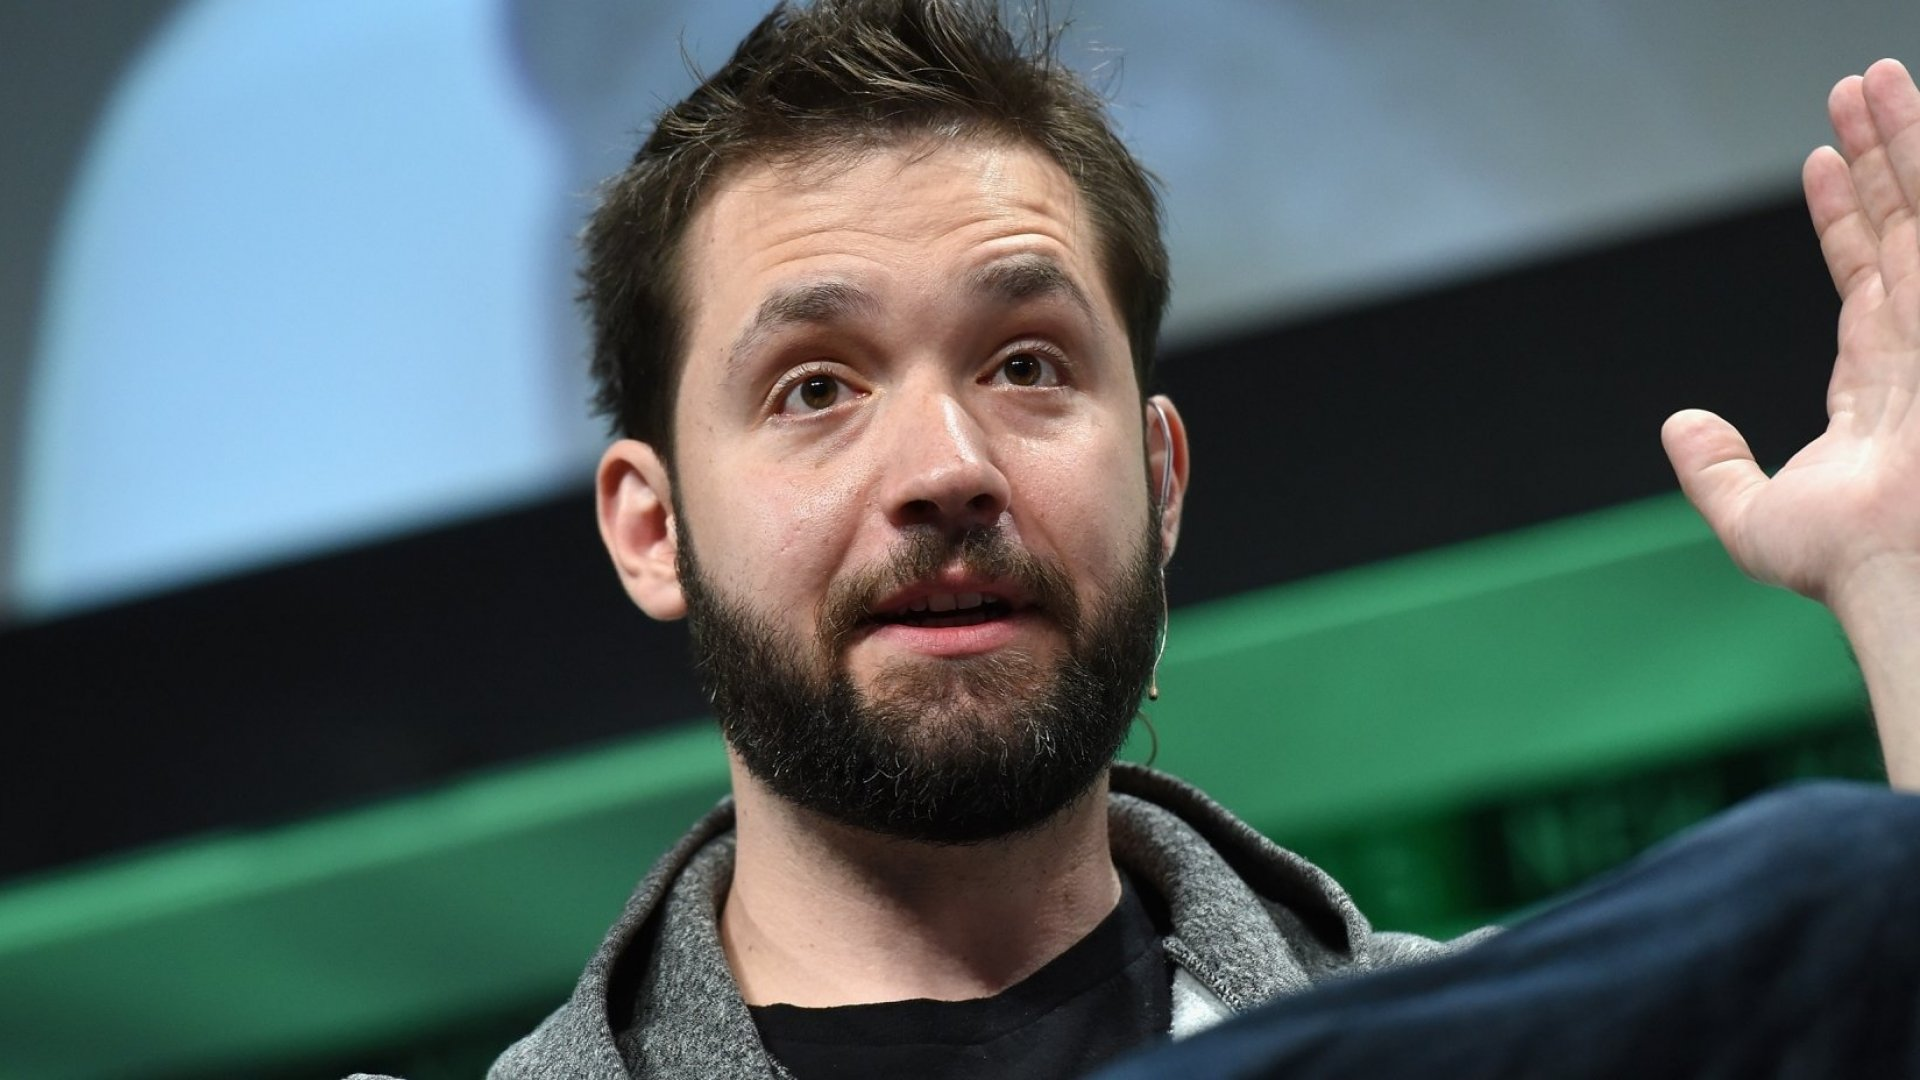 Reddit Reportedly Looking to Raise $150 Million at a $1.7 Billion Valuation